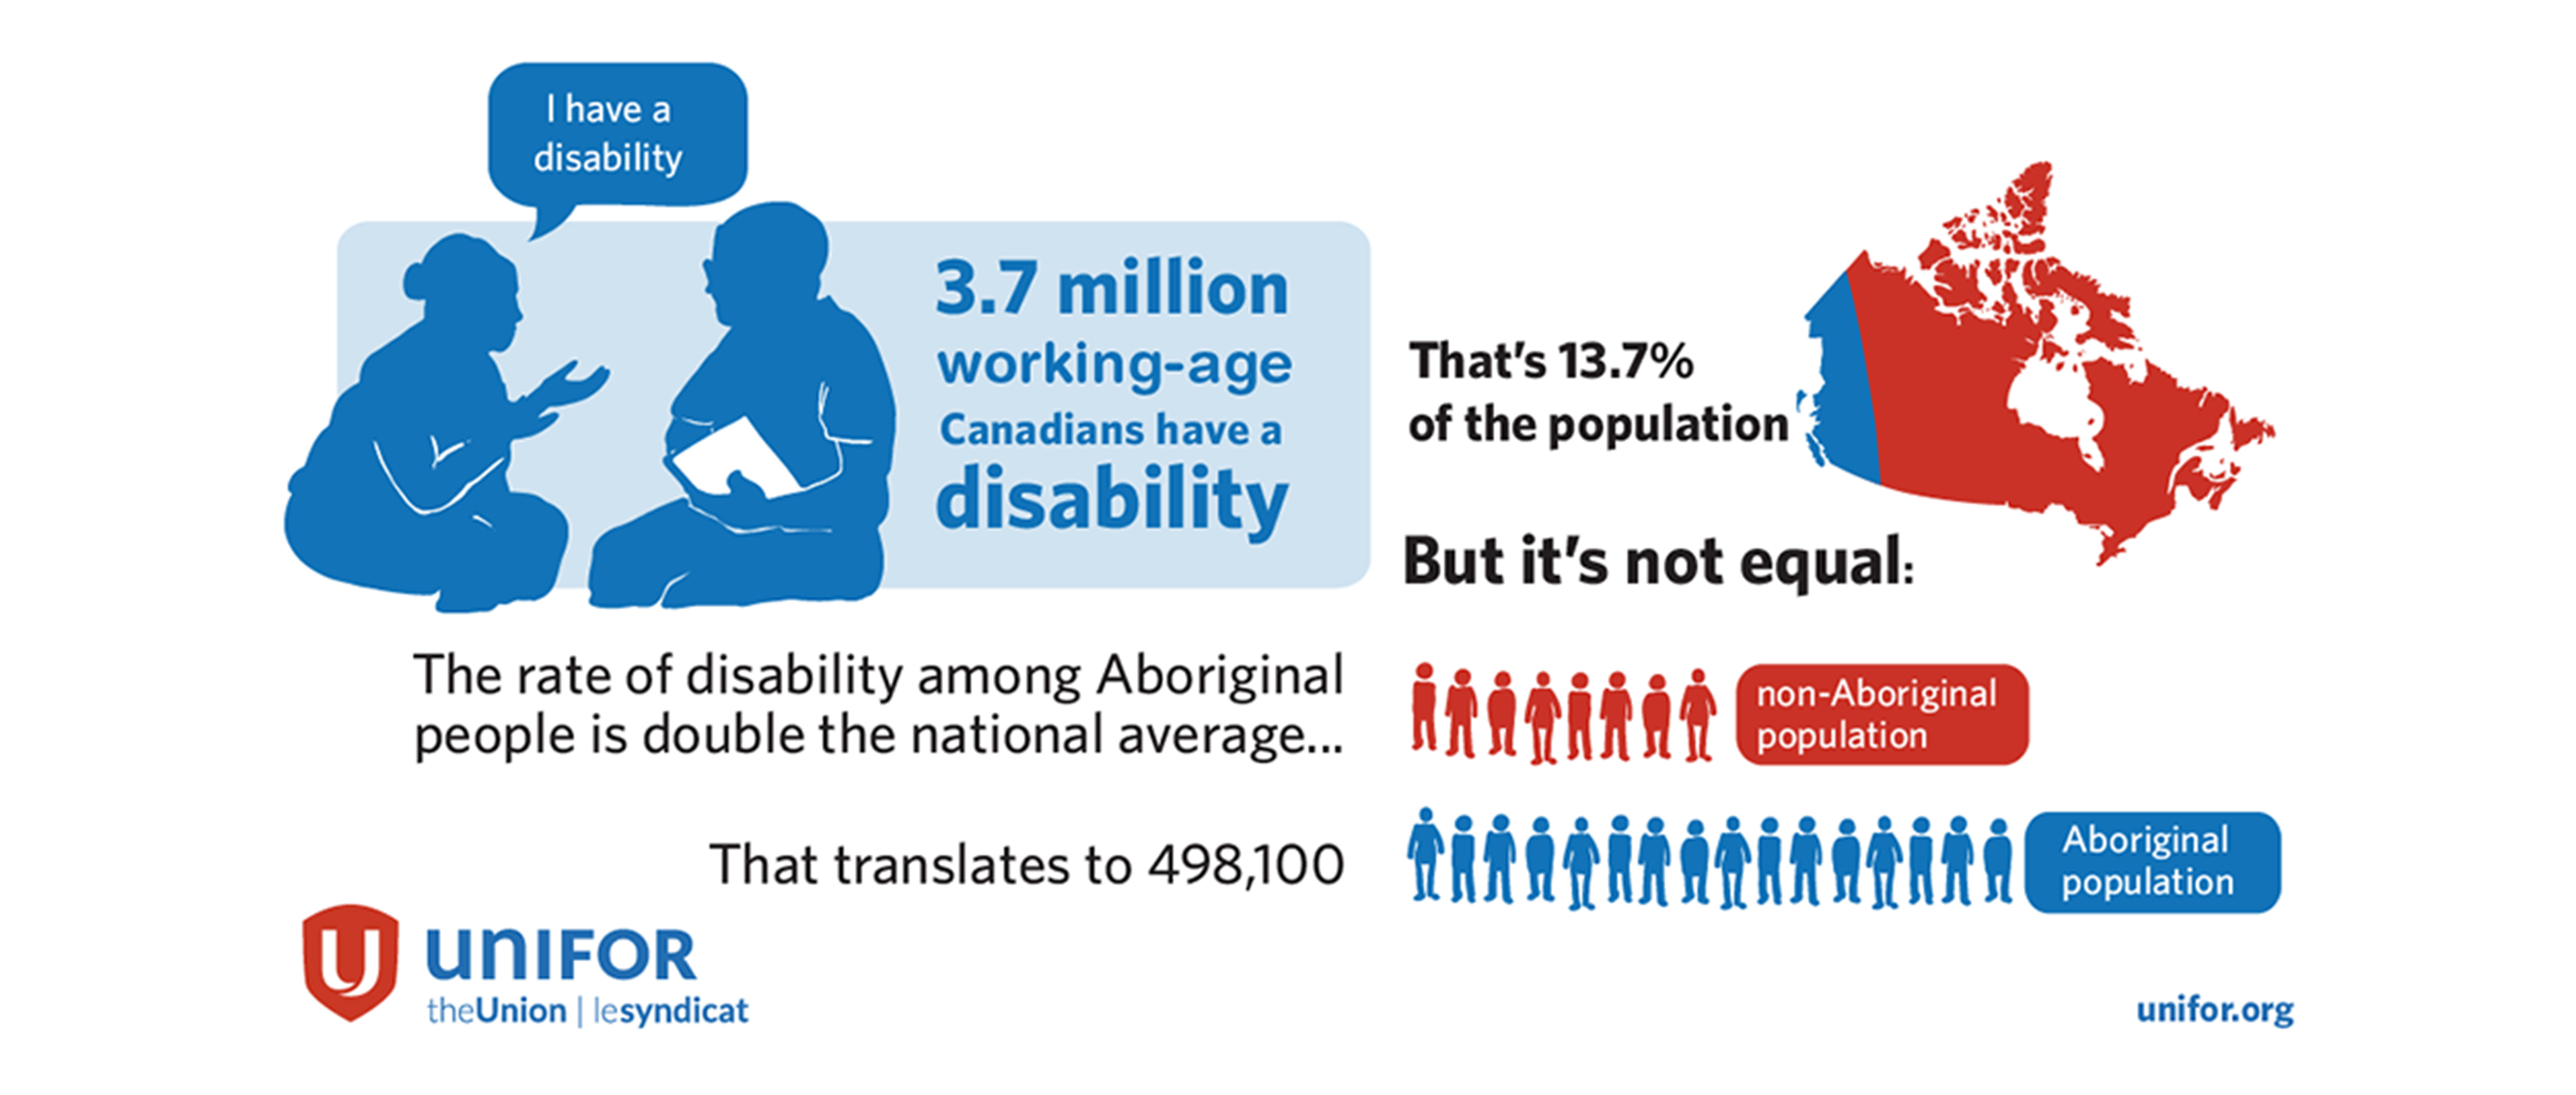 infographic detailing the disability rates amongst Aboriginal people is double the national average